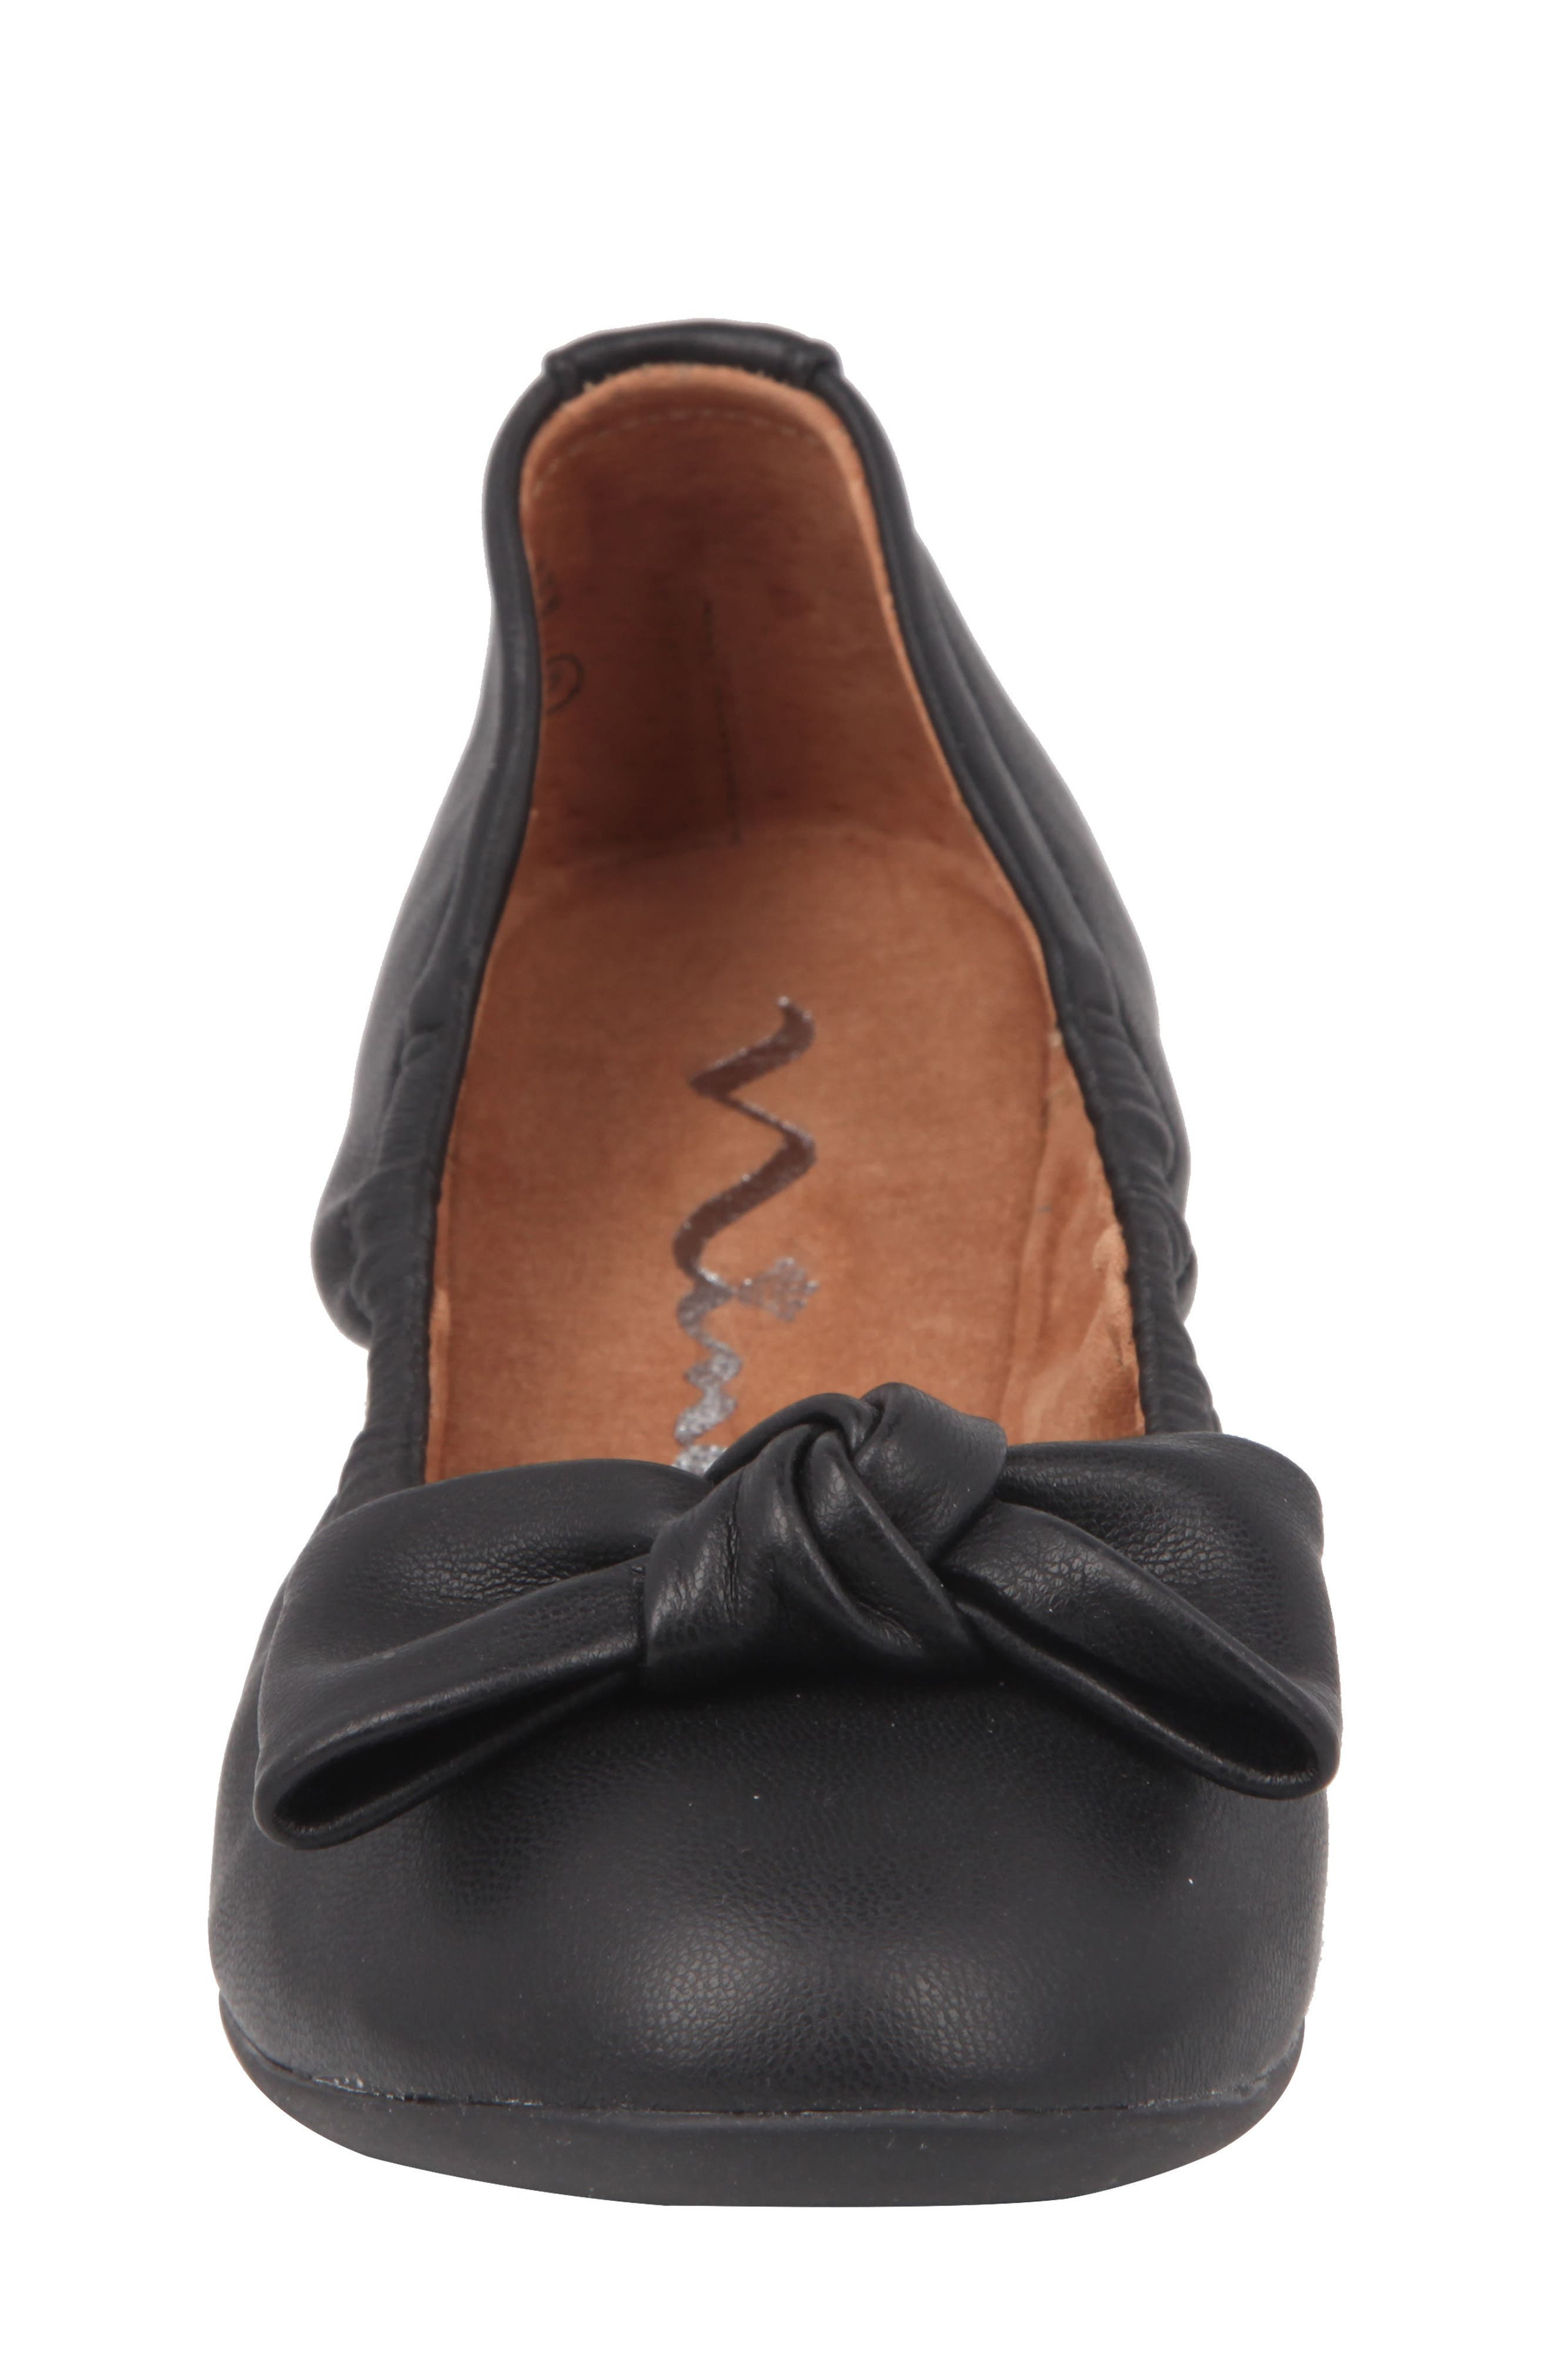 NINA, Karla Bow Ballet Flat, Alternate thumbnail 4, color, BLACK SMOOTH LEATHER